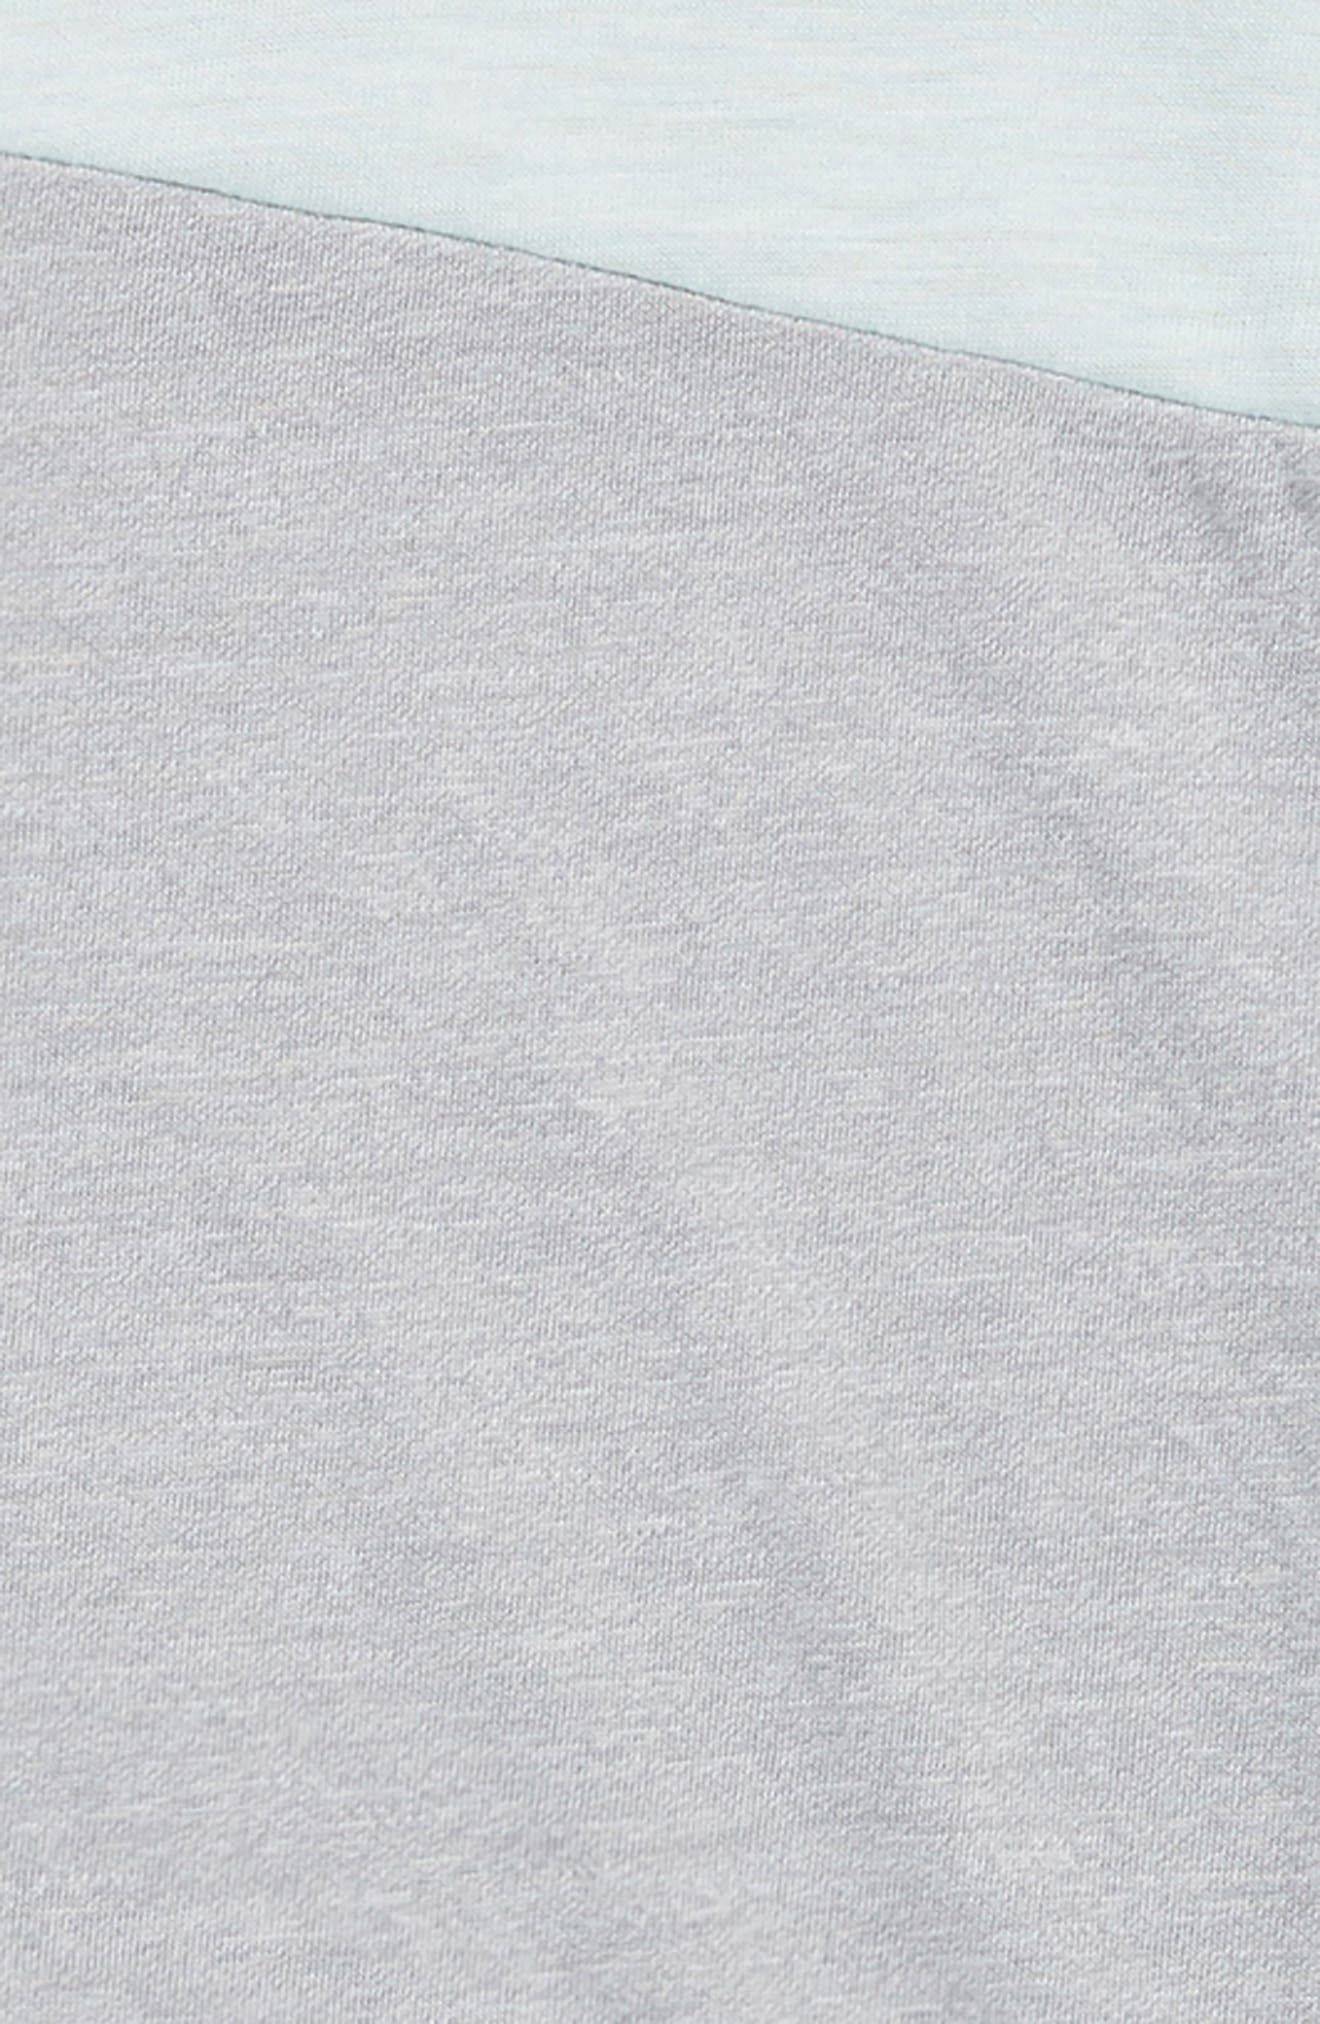 Colorblock Tee,                             Alternate thumbnail 2, color,                             Grey Wolf- Teal